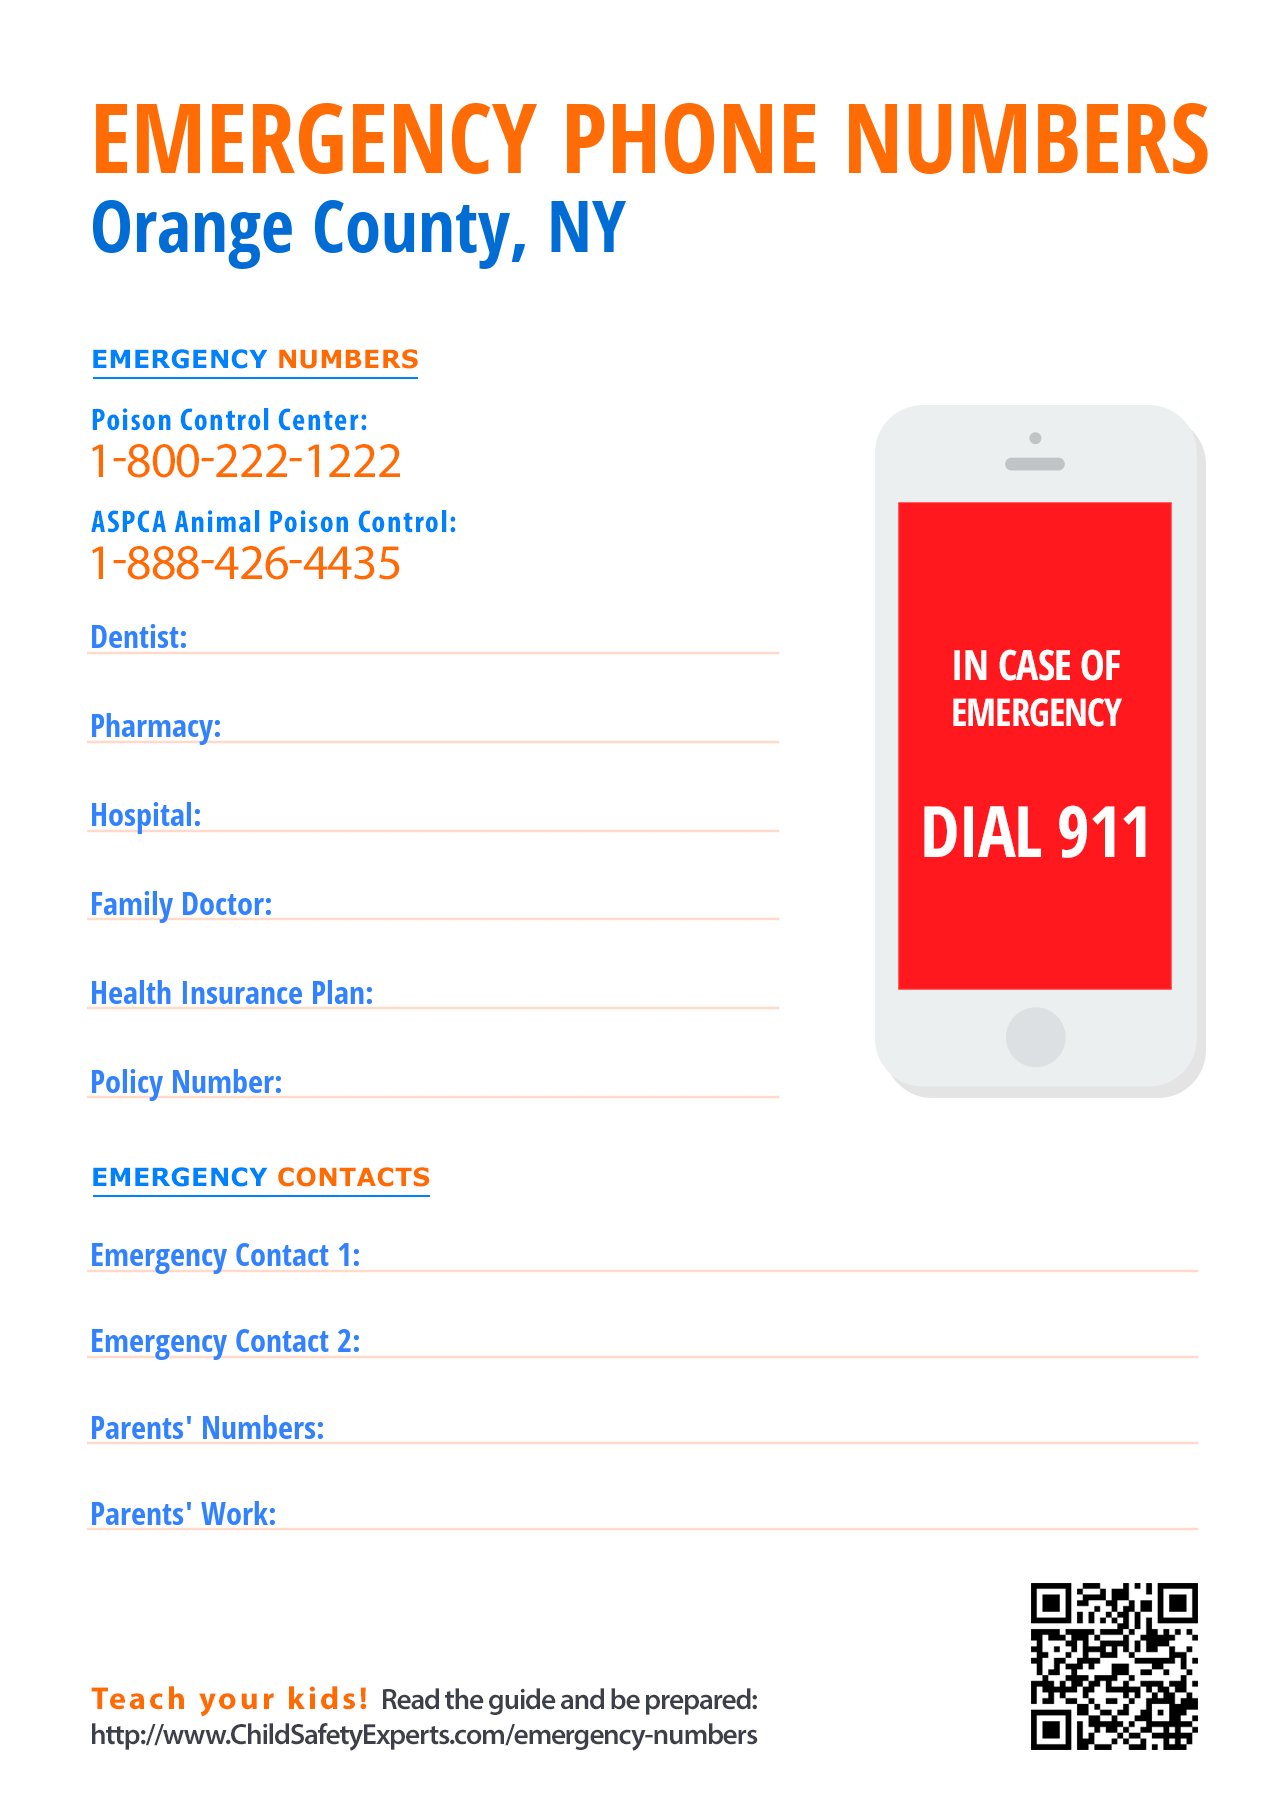 Important emergency phone numbers in Orange County, New York